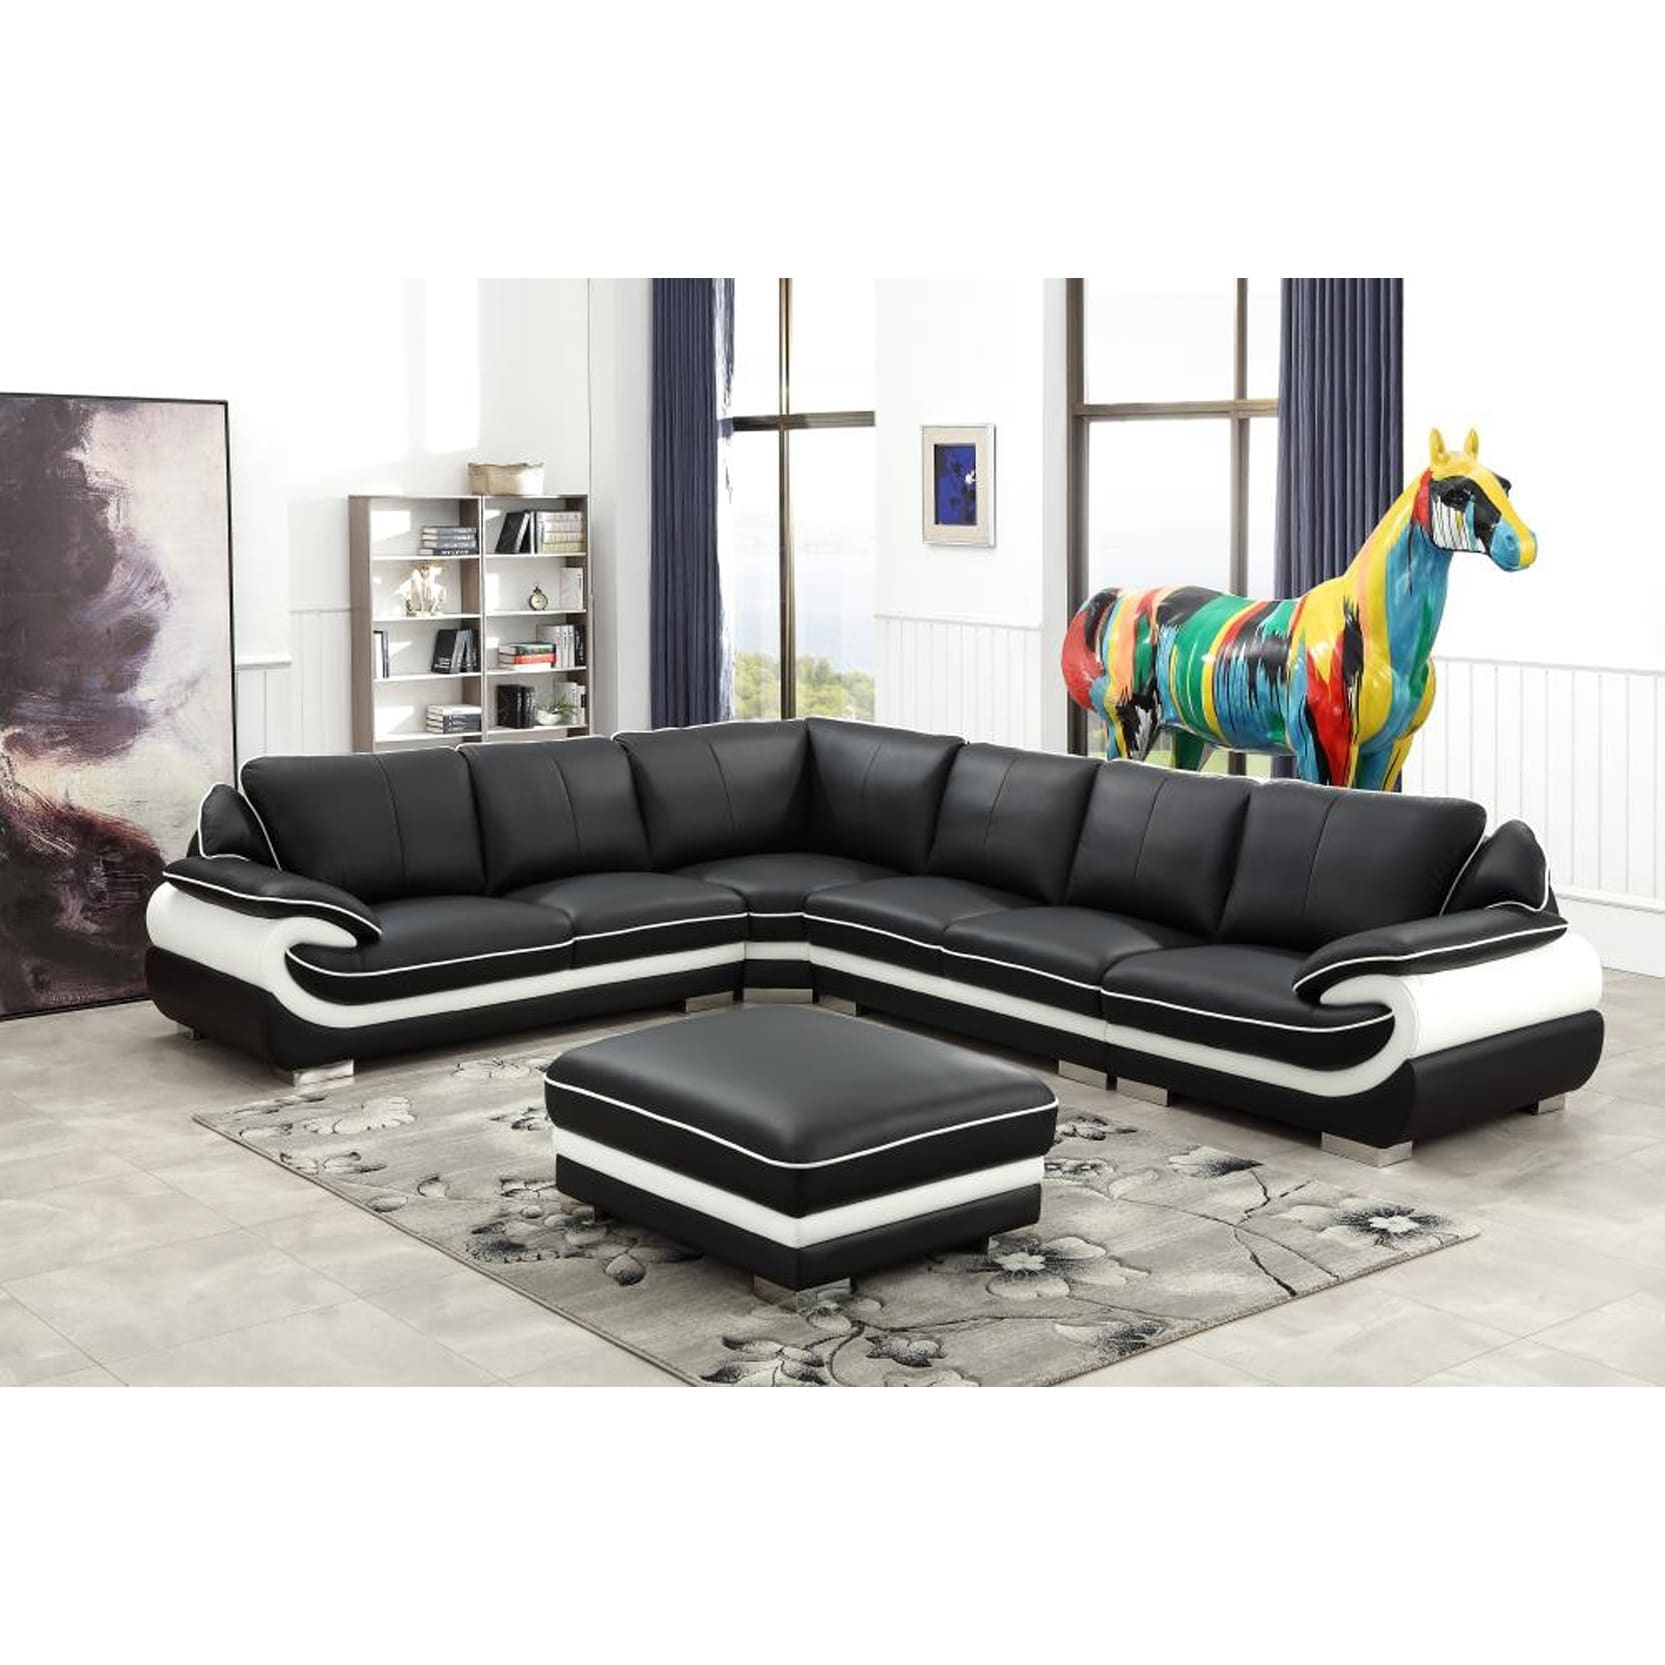 Black and White Modern Contemporary Real Leather Sectional Living Room  Furniture Set with Ottoman